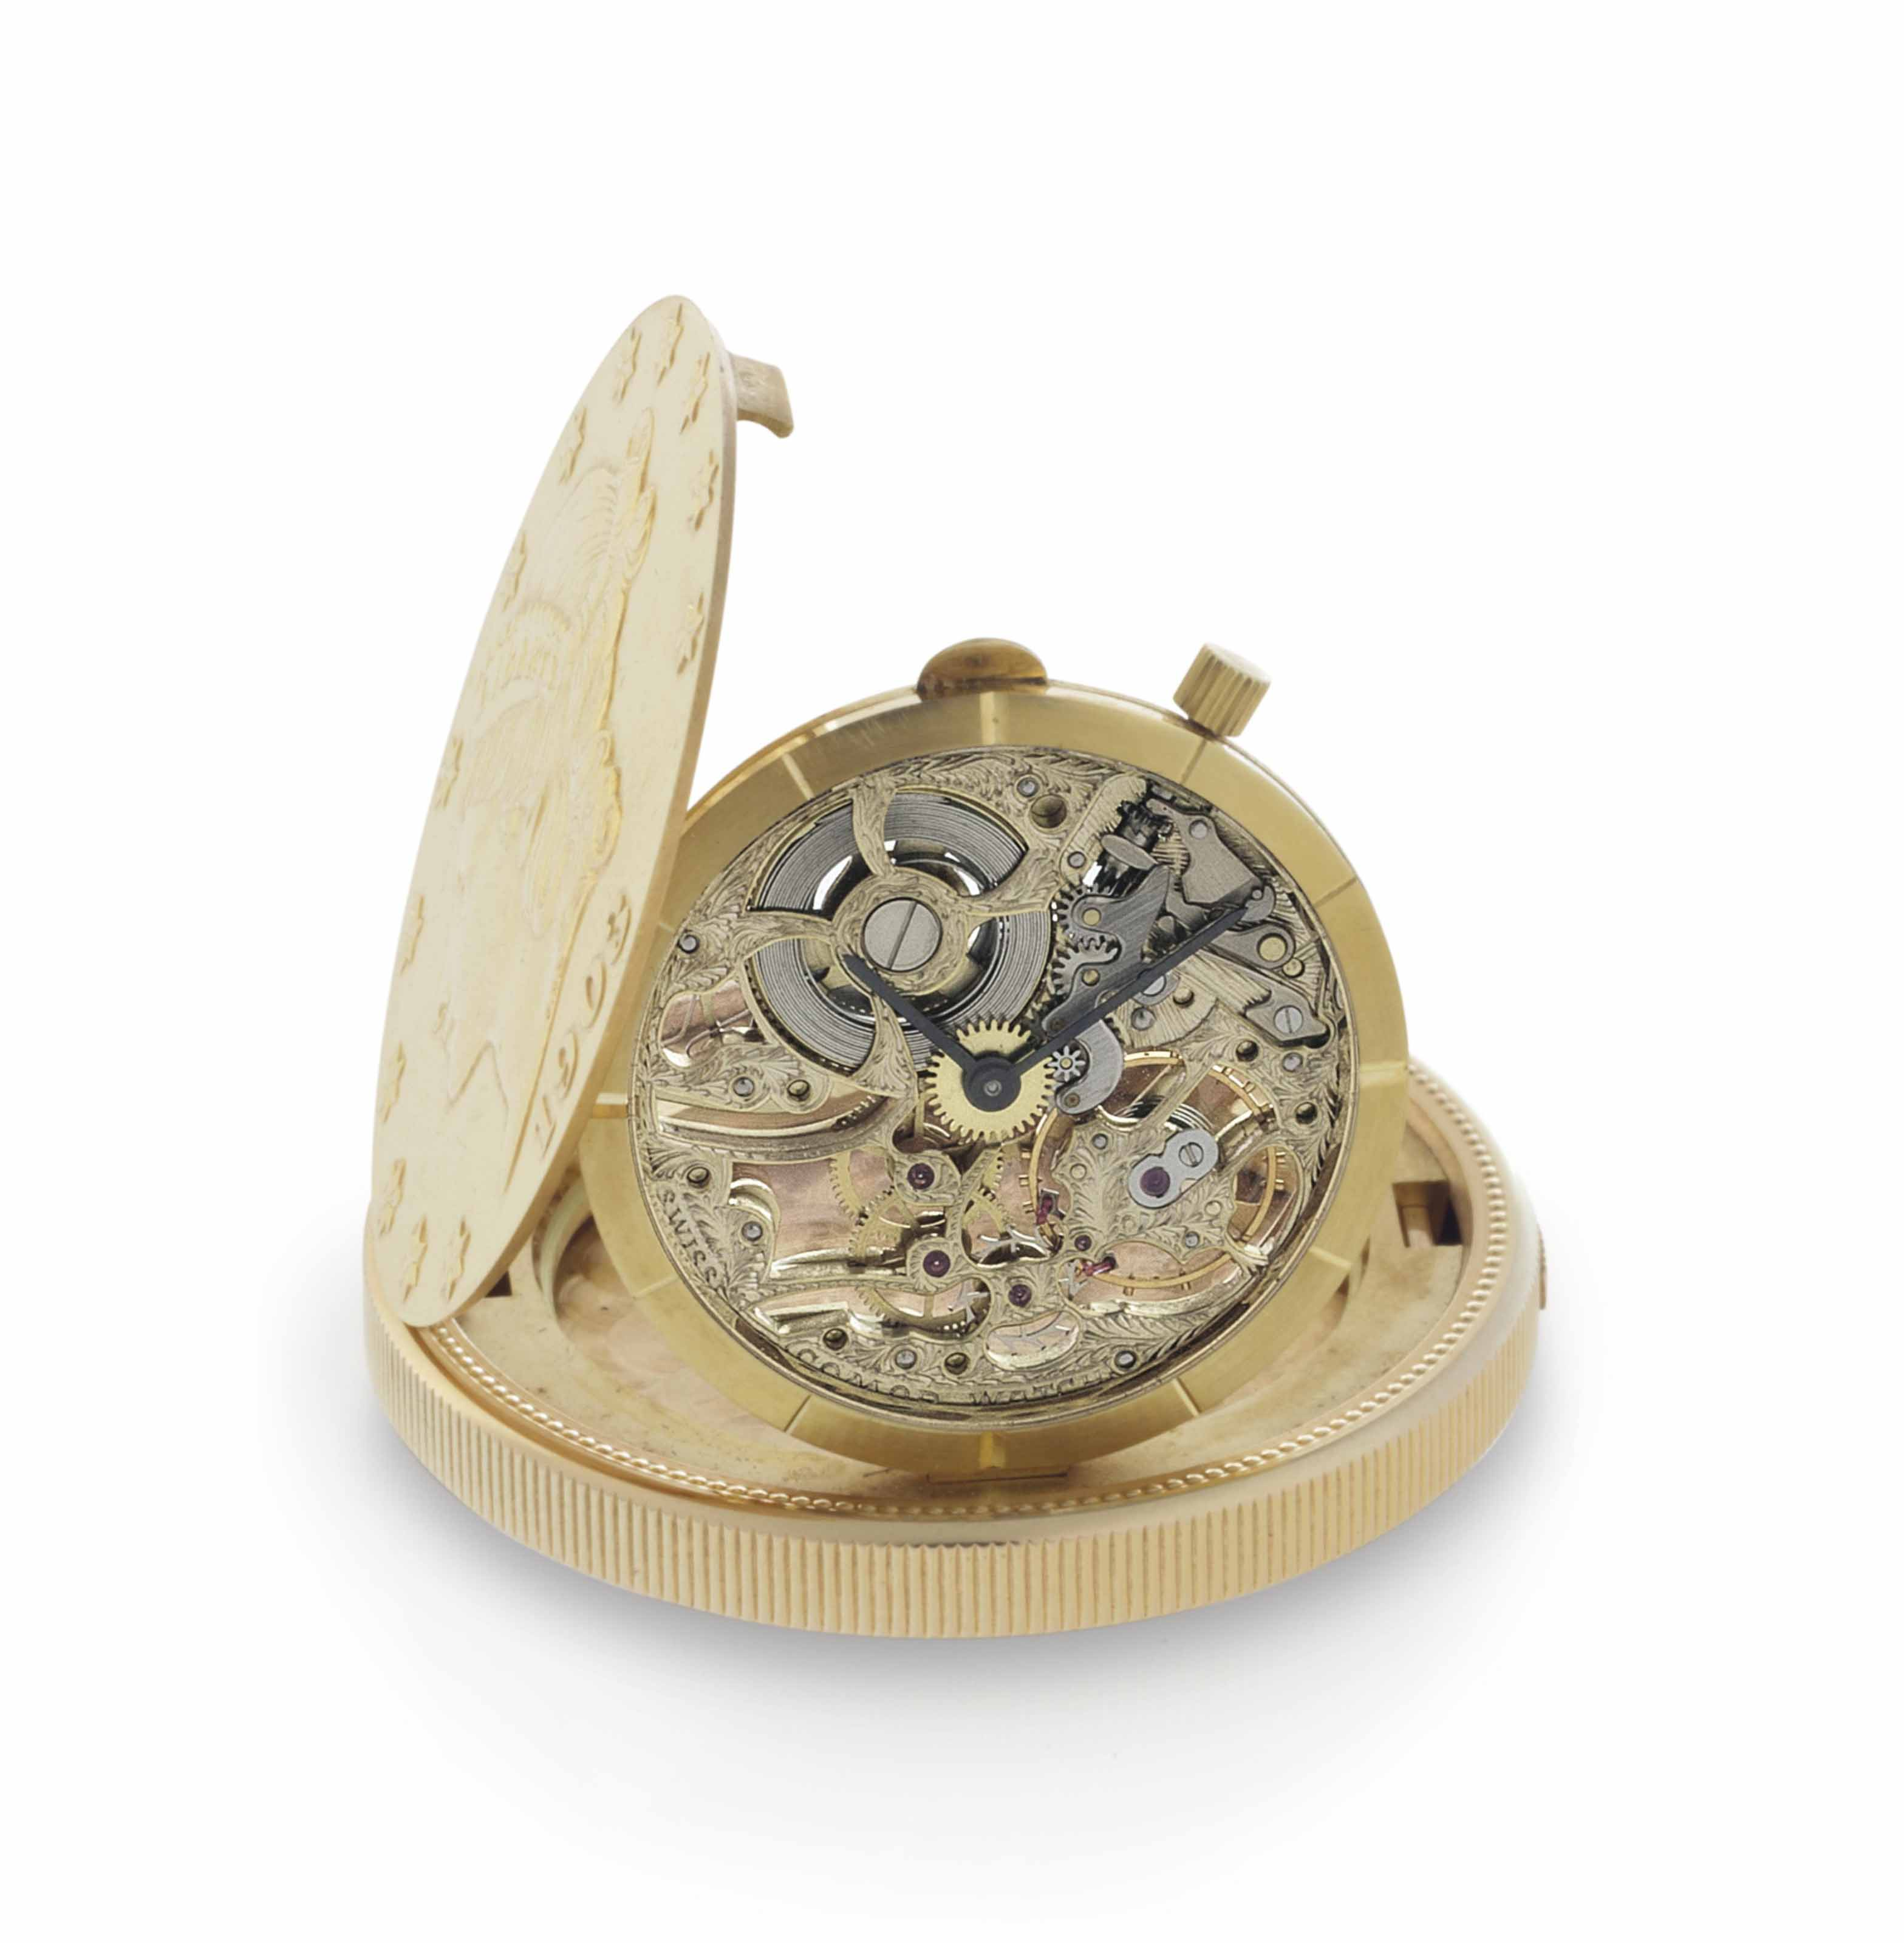 Comor. A Fine 18k Gold United States of America Twenty Dollar Coin Watch with Skeletonized Dial